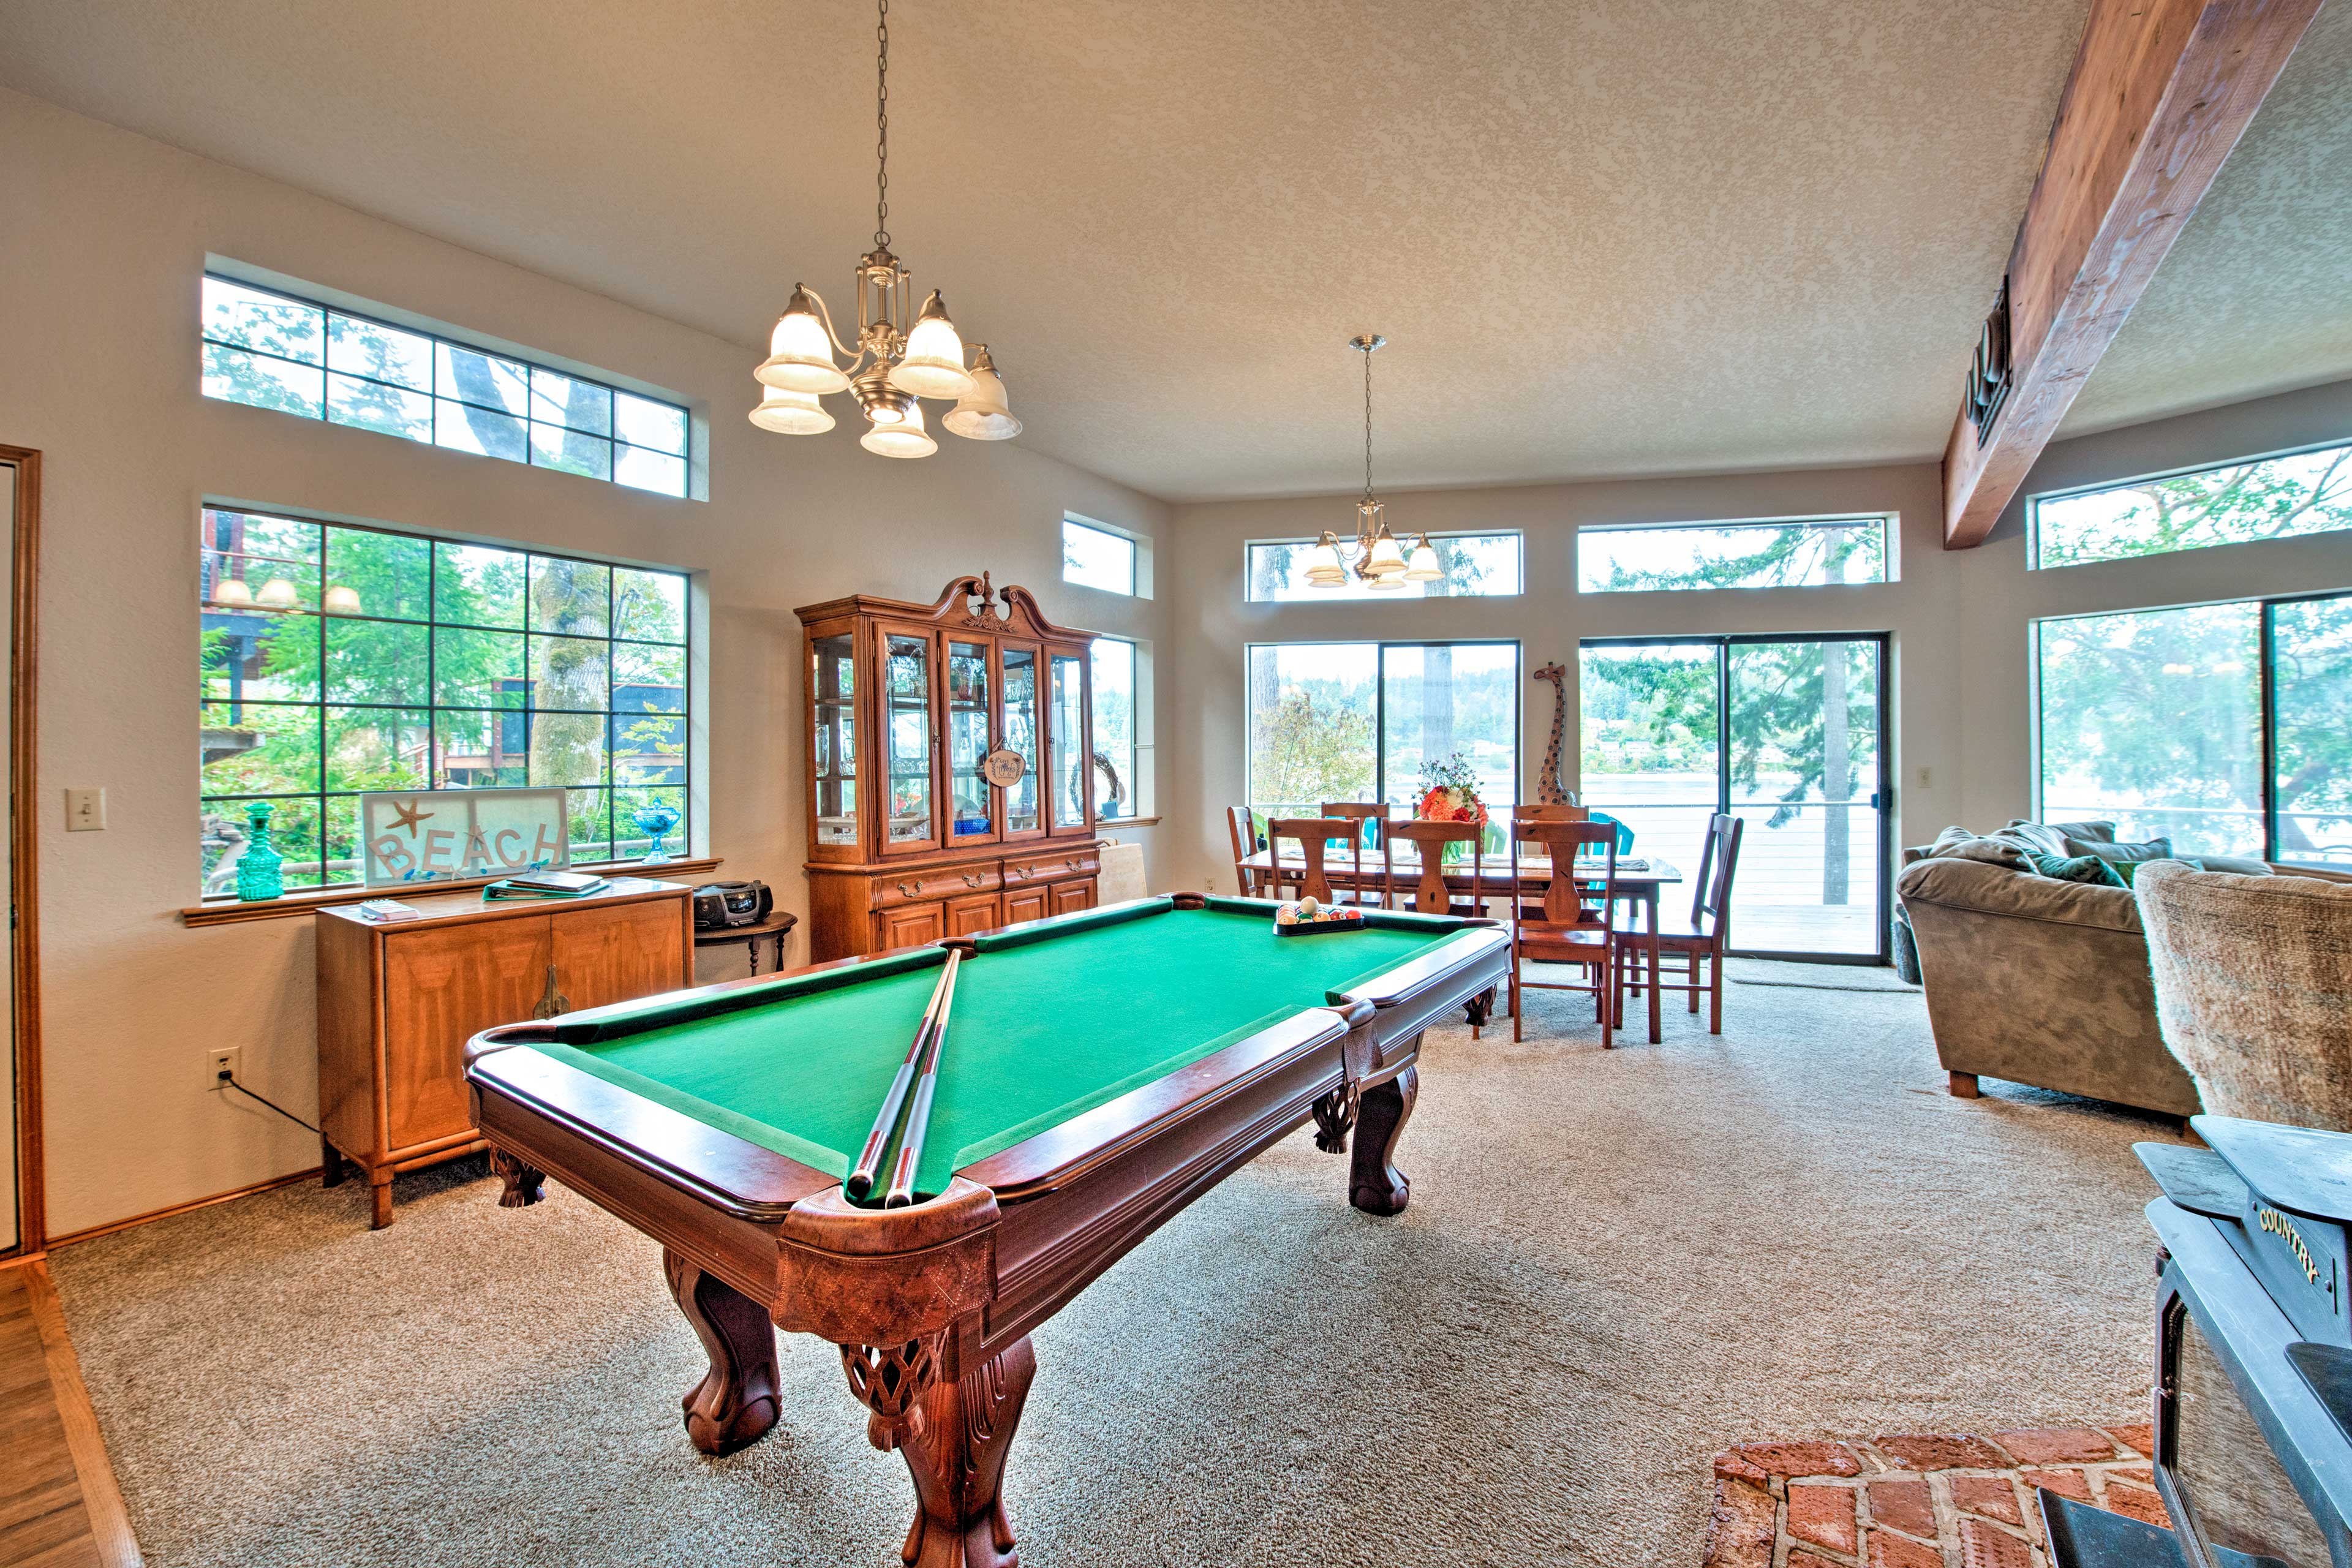 Main Living Space | Pool Table | Wood-Burning Stove